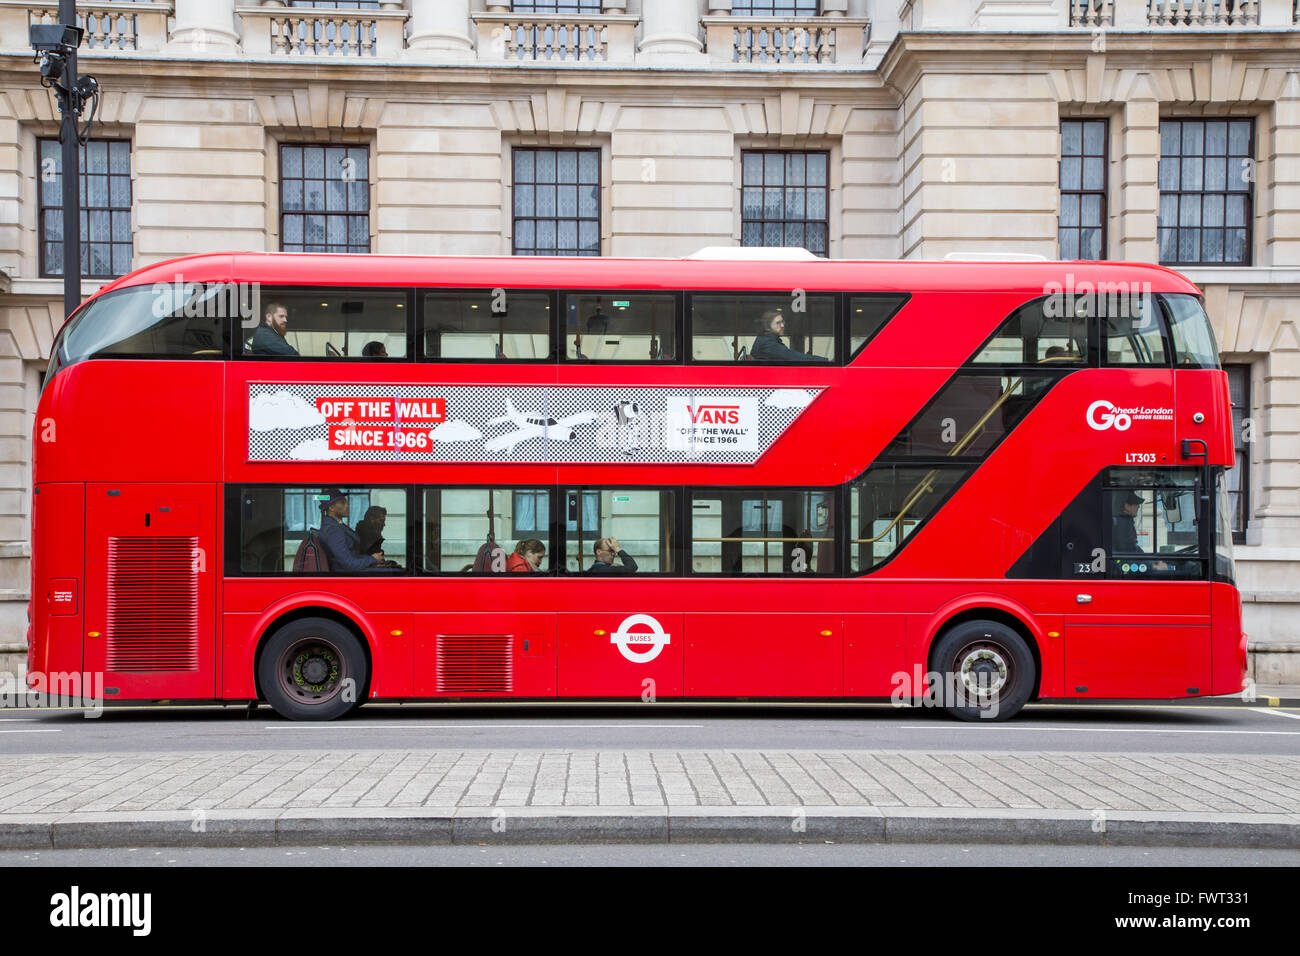 London New Routemaster double-decker red bus - Stock Image